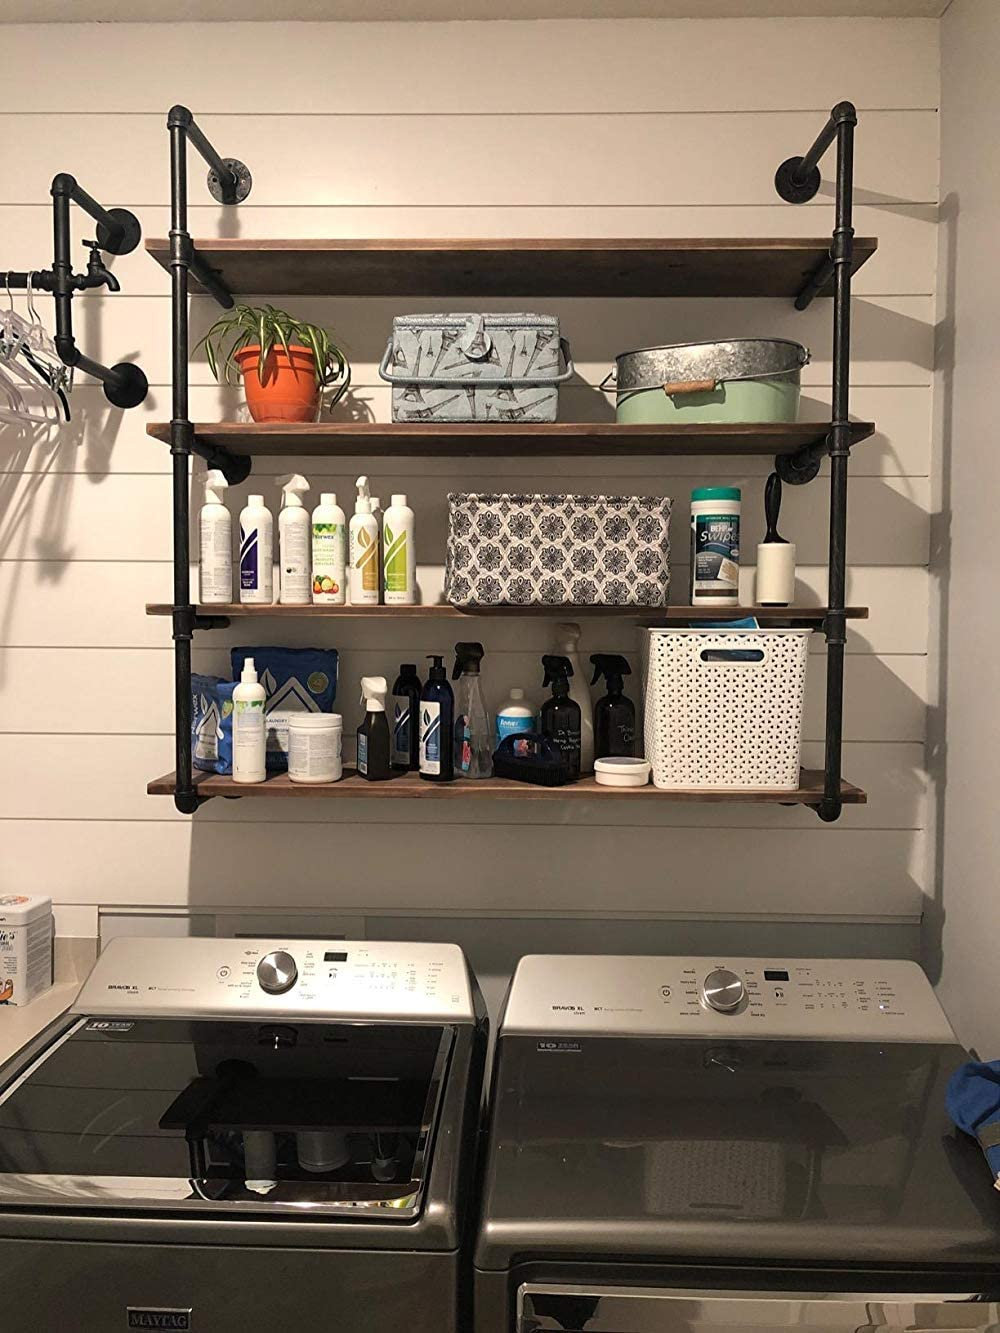 Industrial Pipe Shelving Metal Floating Shelves,Rustic Kitchen Wall Shelf Wood Hanging Shelf,48in Steampunk Large Pipe Shelves Wall Mounted,Bar Bookshelves Farmhouse Shelving Bookshelf (4 Tier)